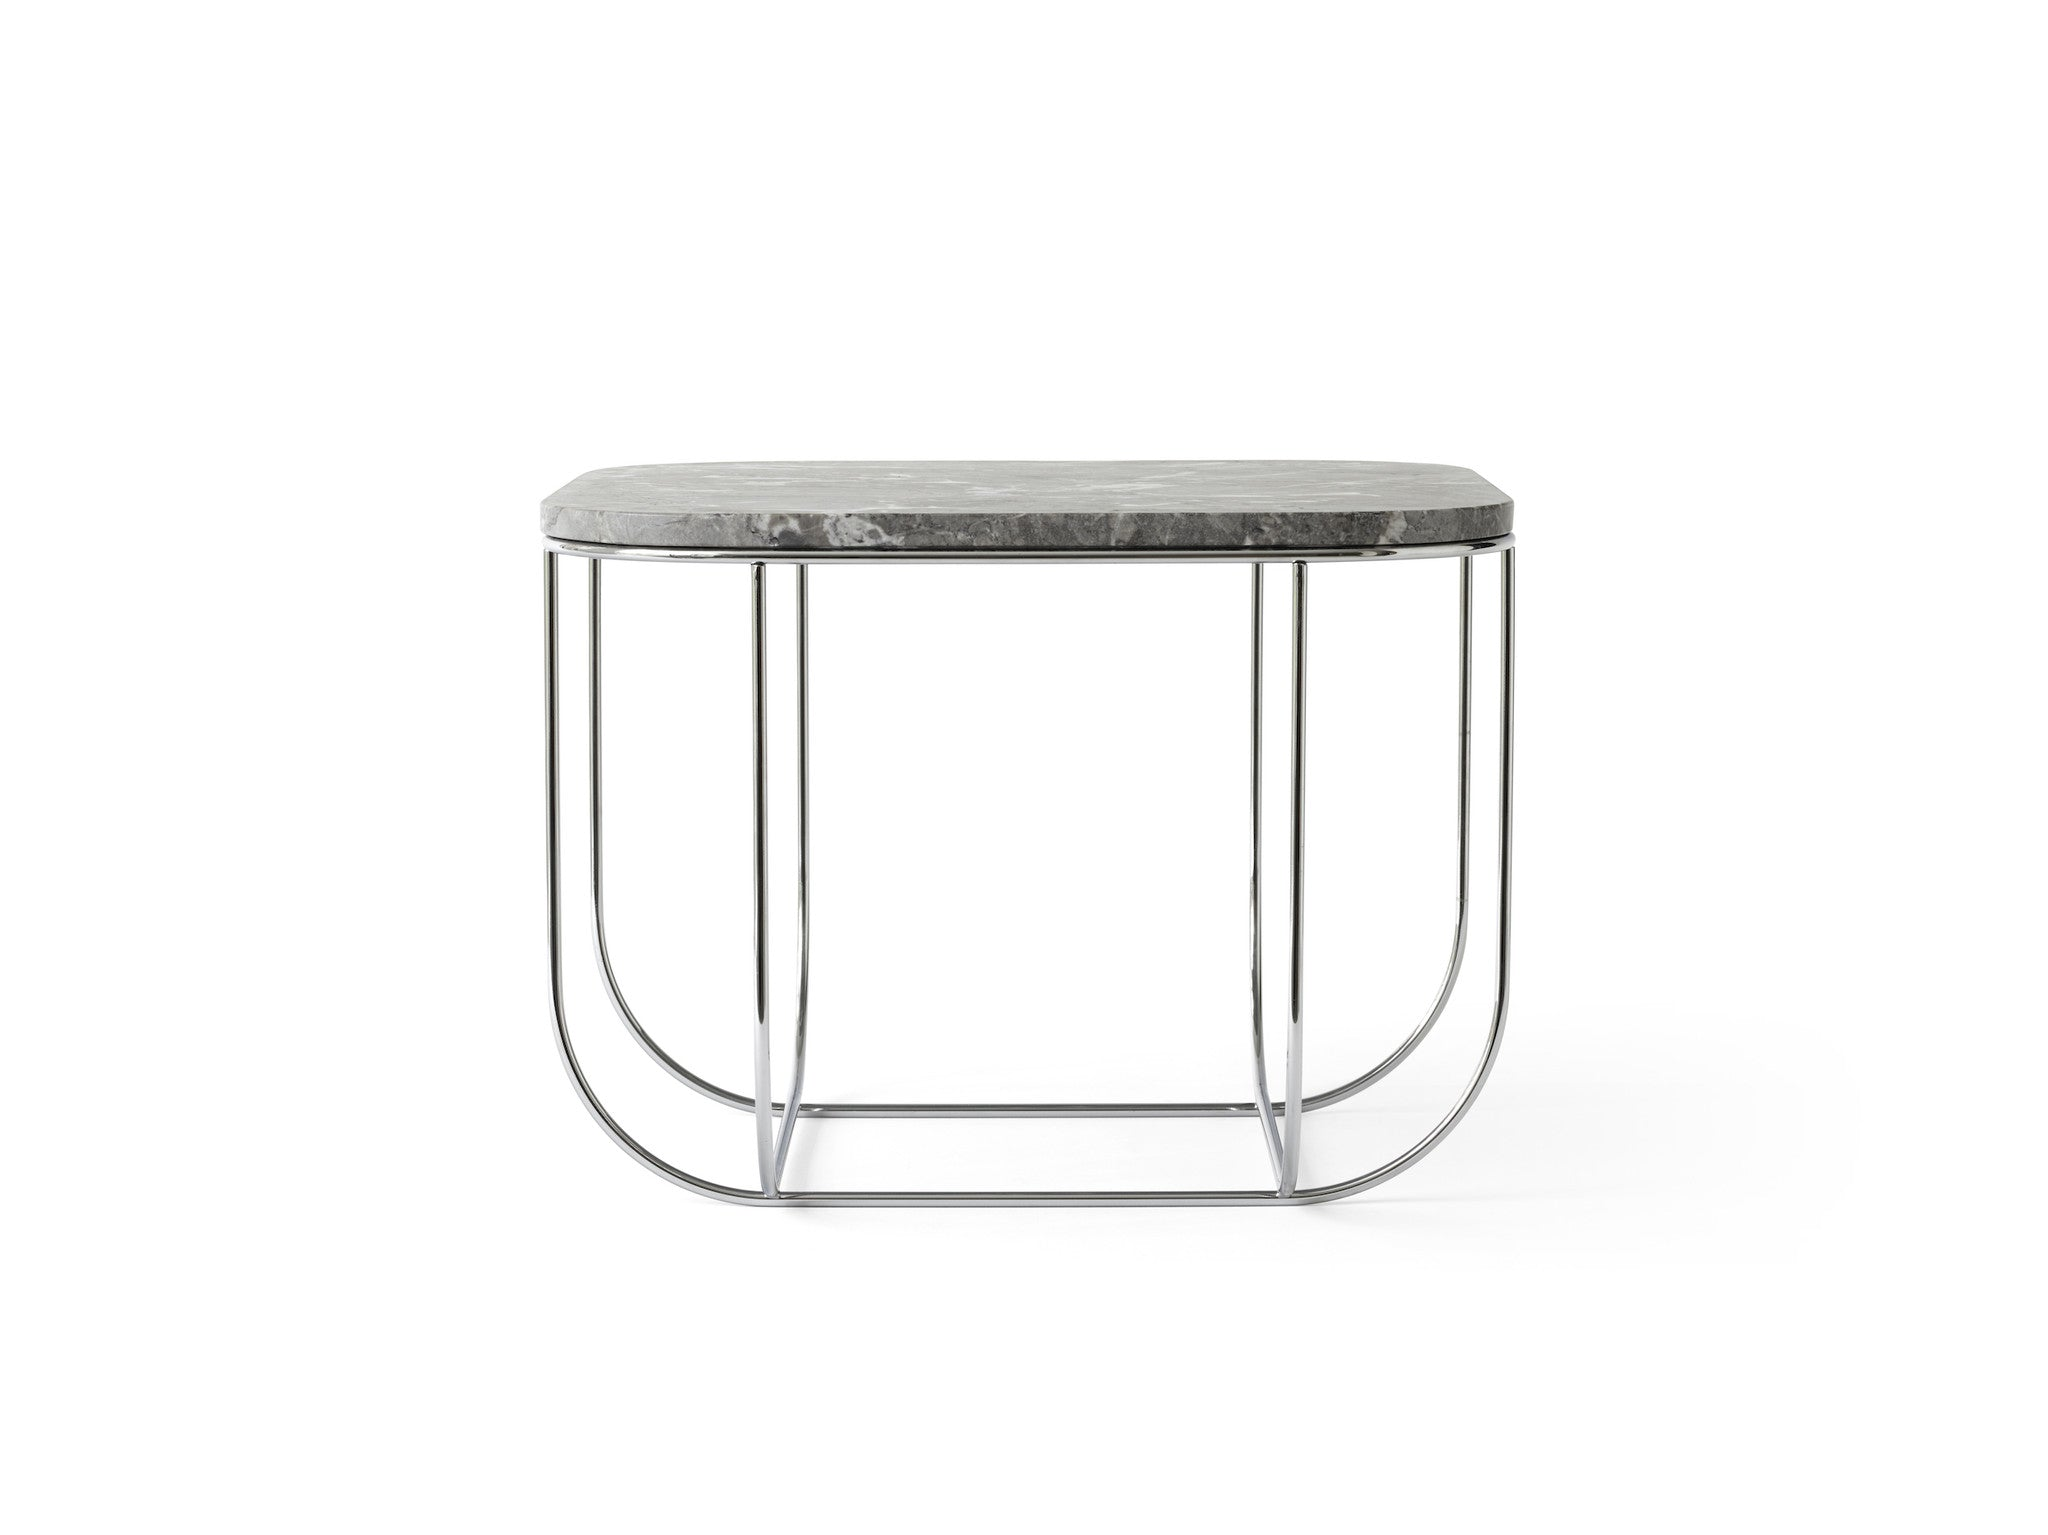 Fuwl Cage Table - Chrome/Grey Marble fra Menu